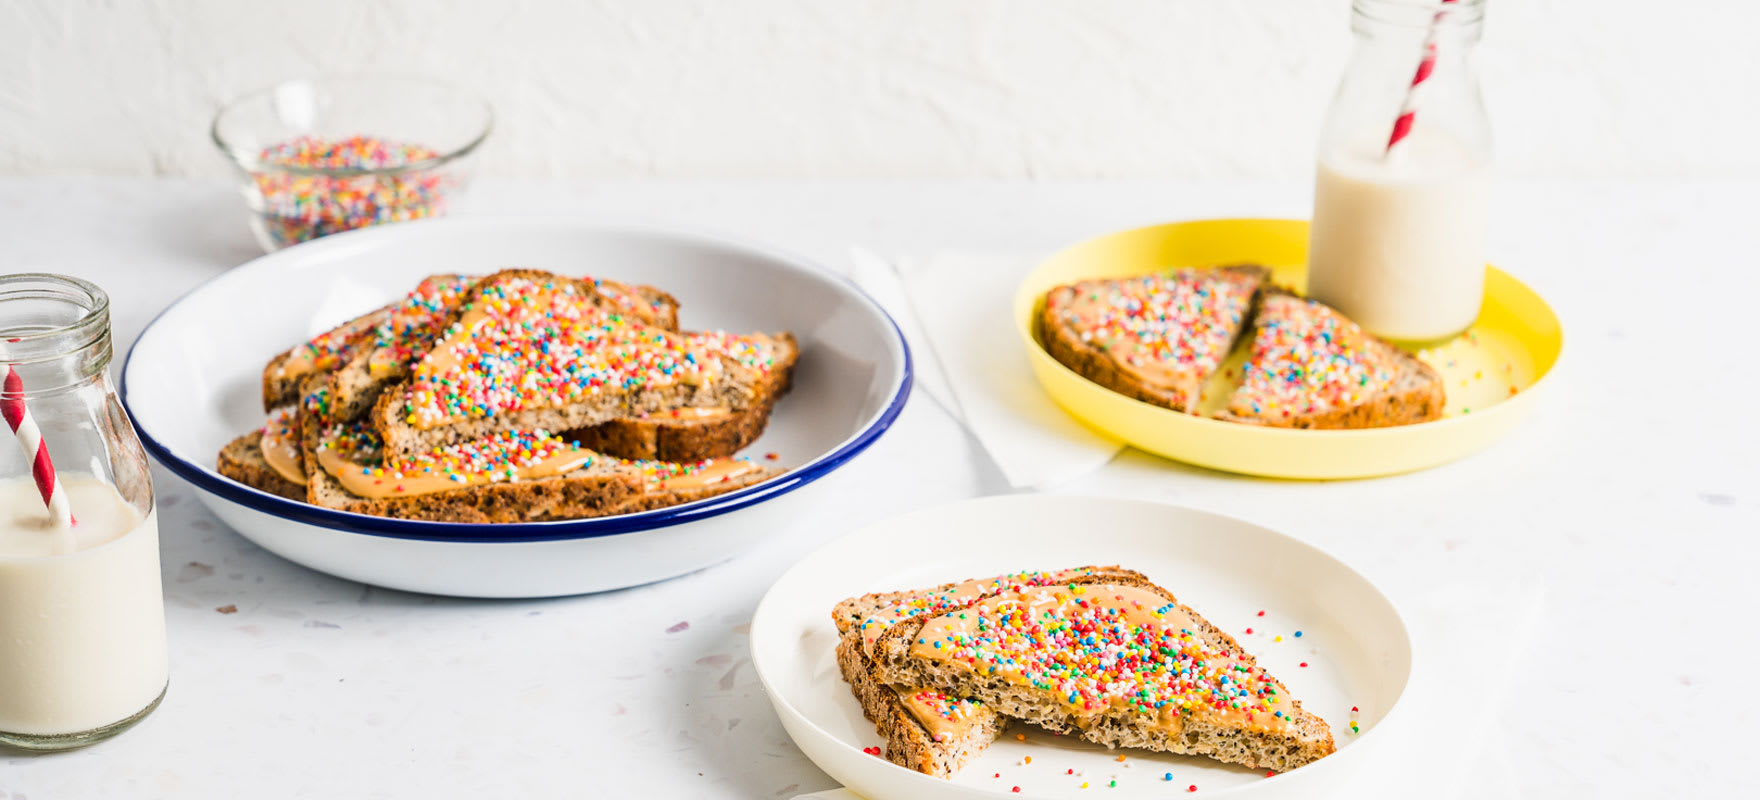 Peanut Butter Fairy Bread image 1